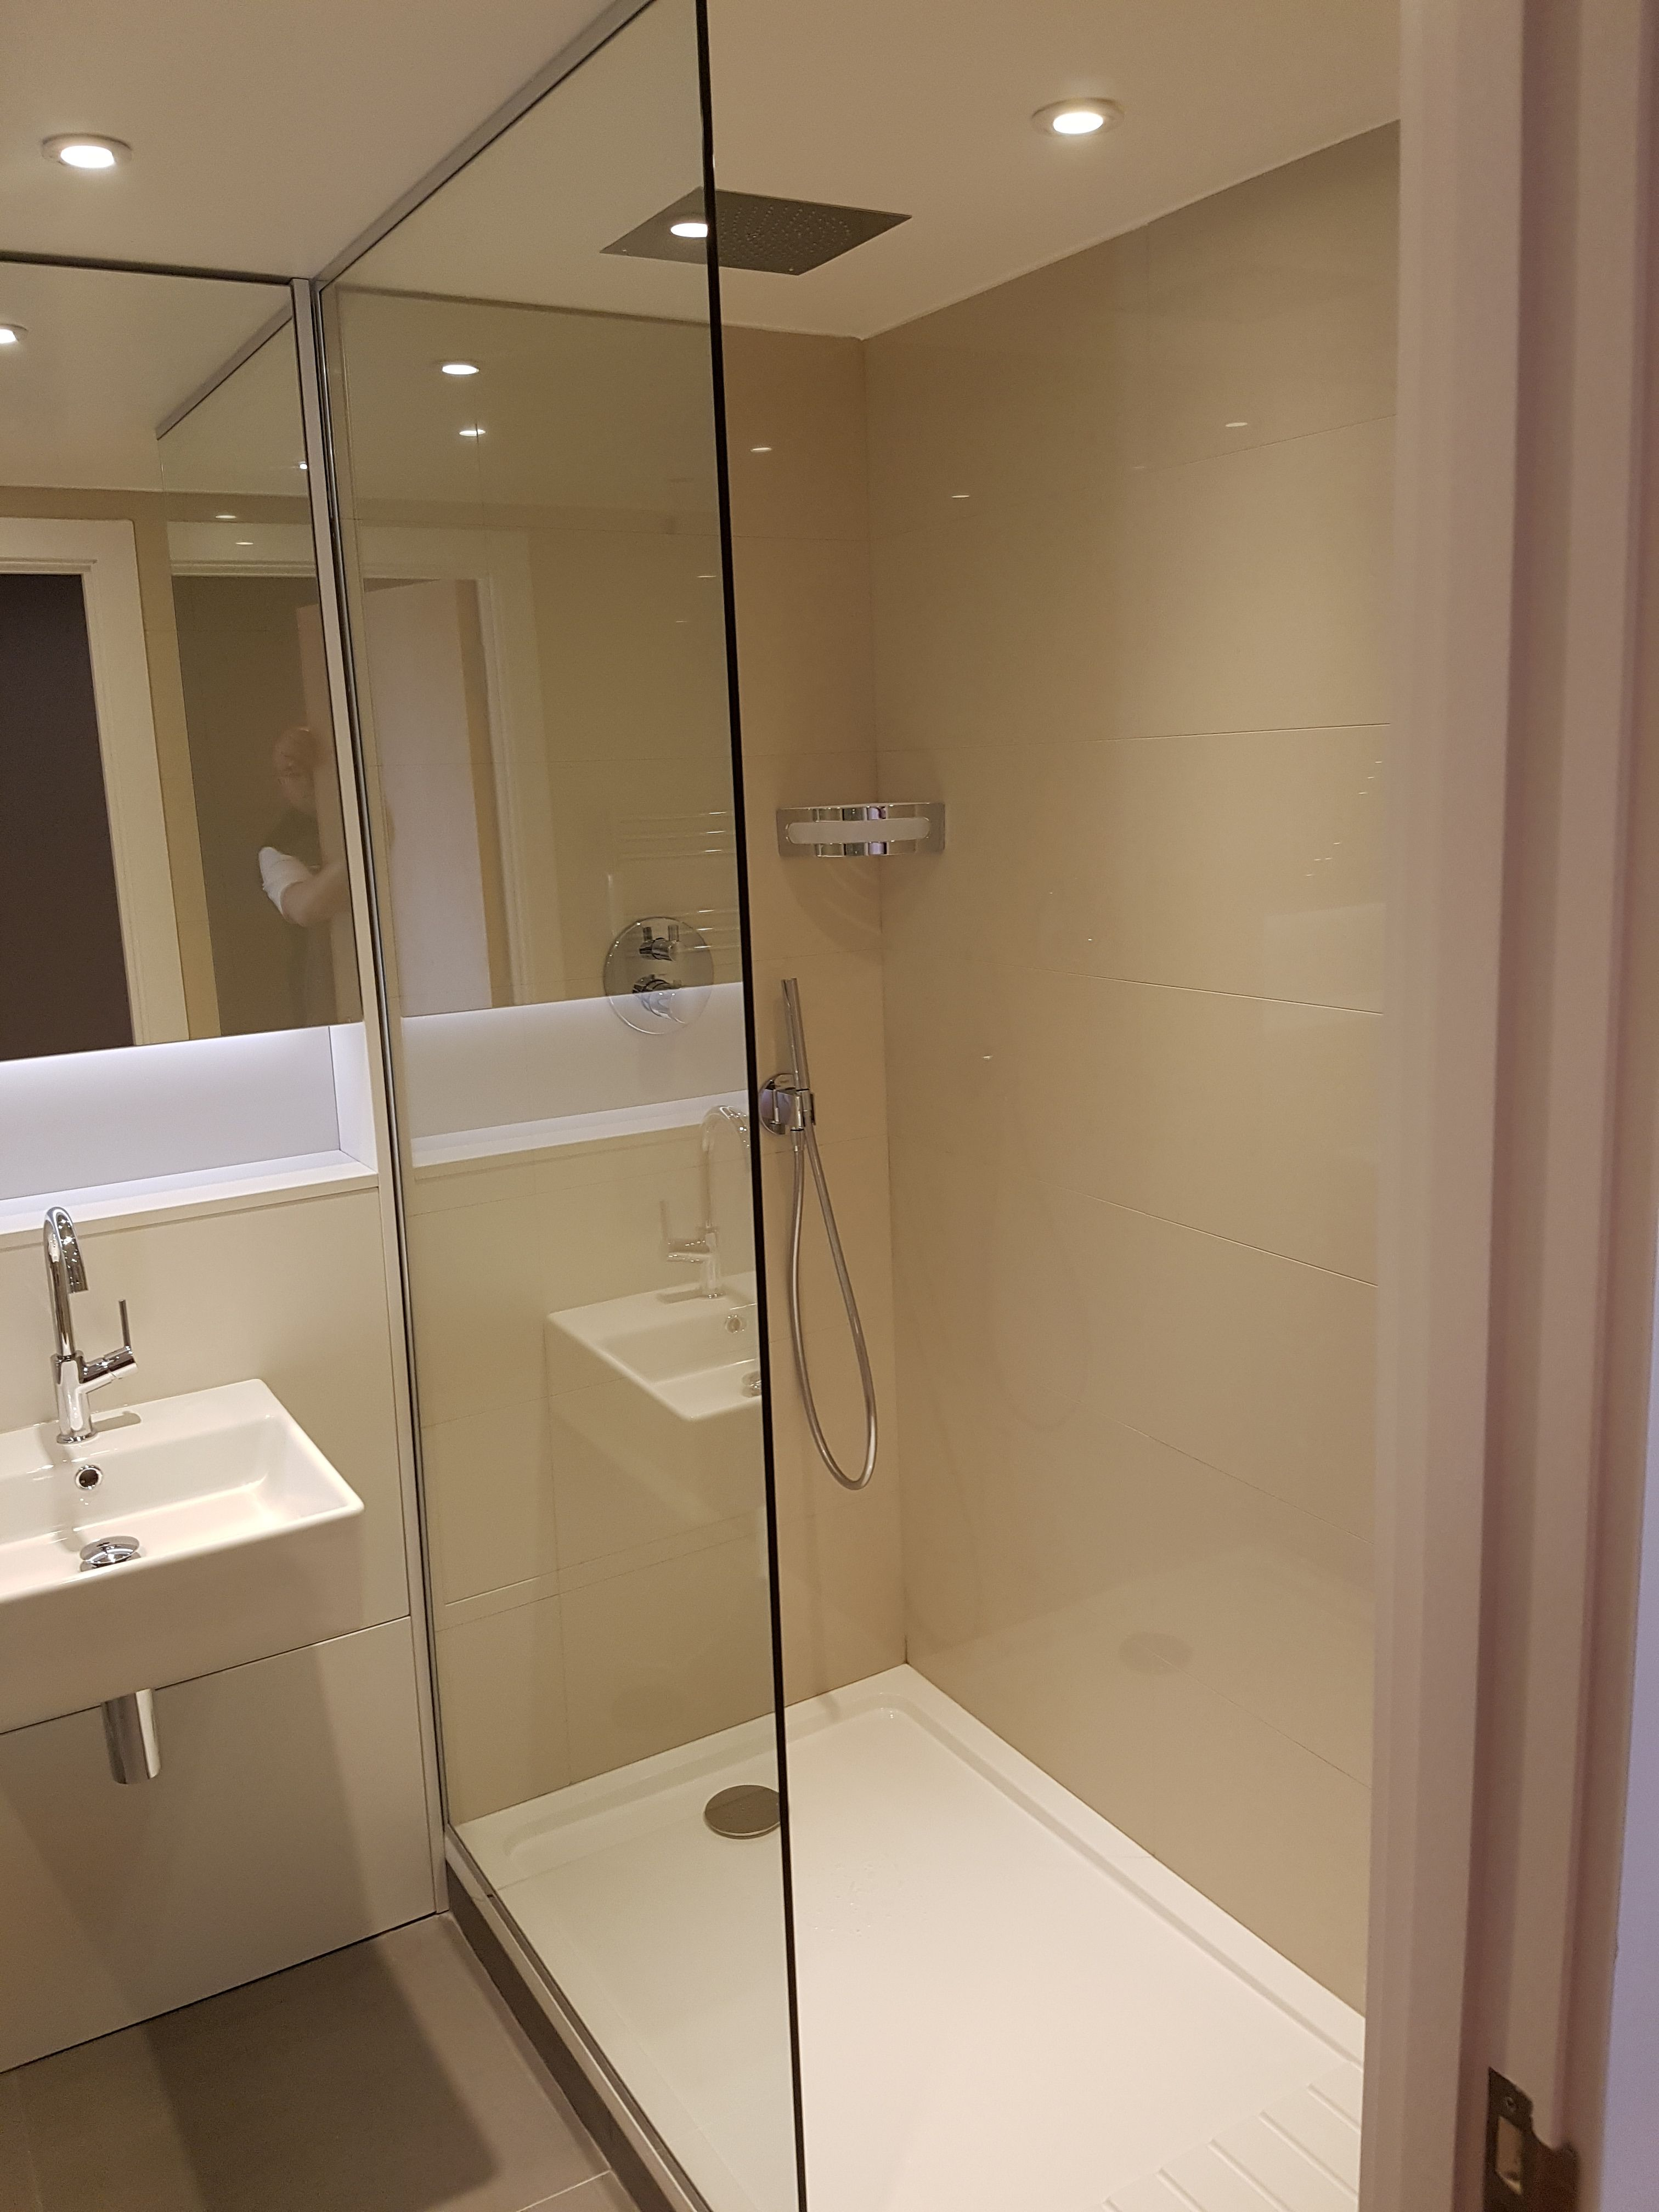 Bathroom Fitting In South West London  Build In Shower  Bathroom Inspiration Bathroom Designers And Fitters Design Ideas